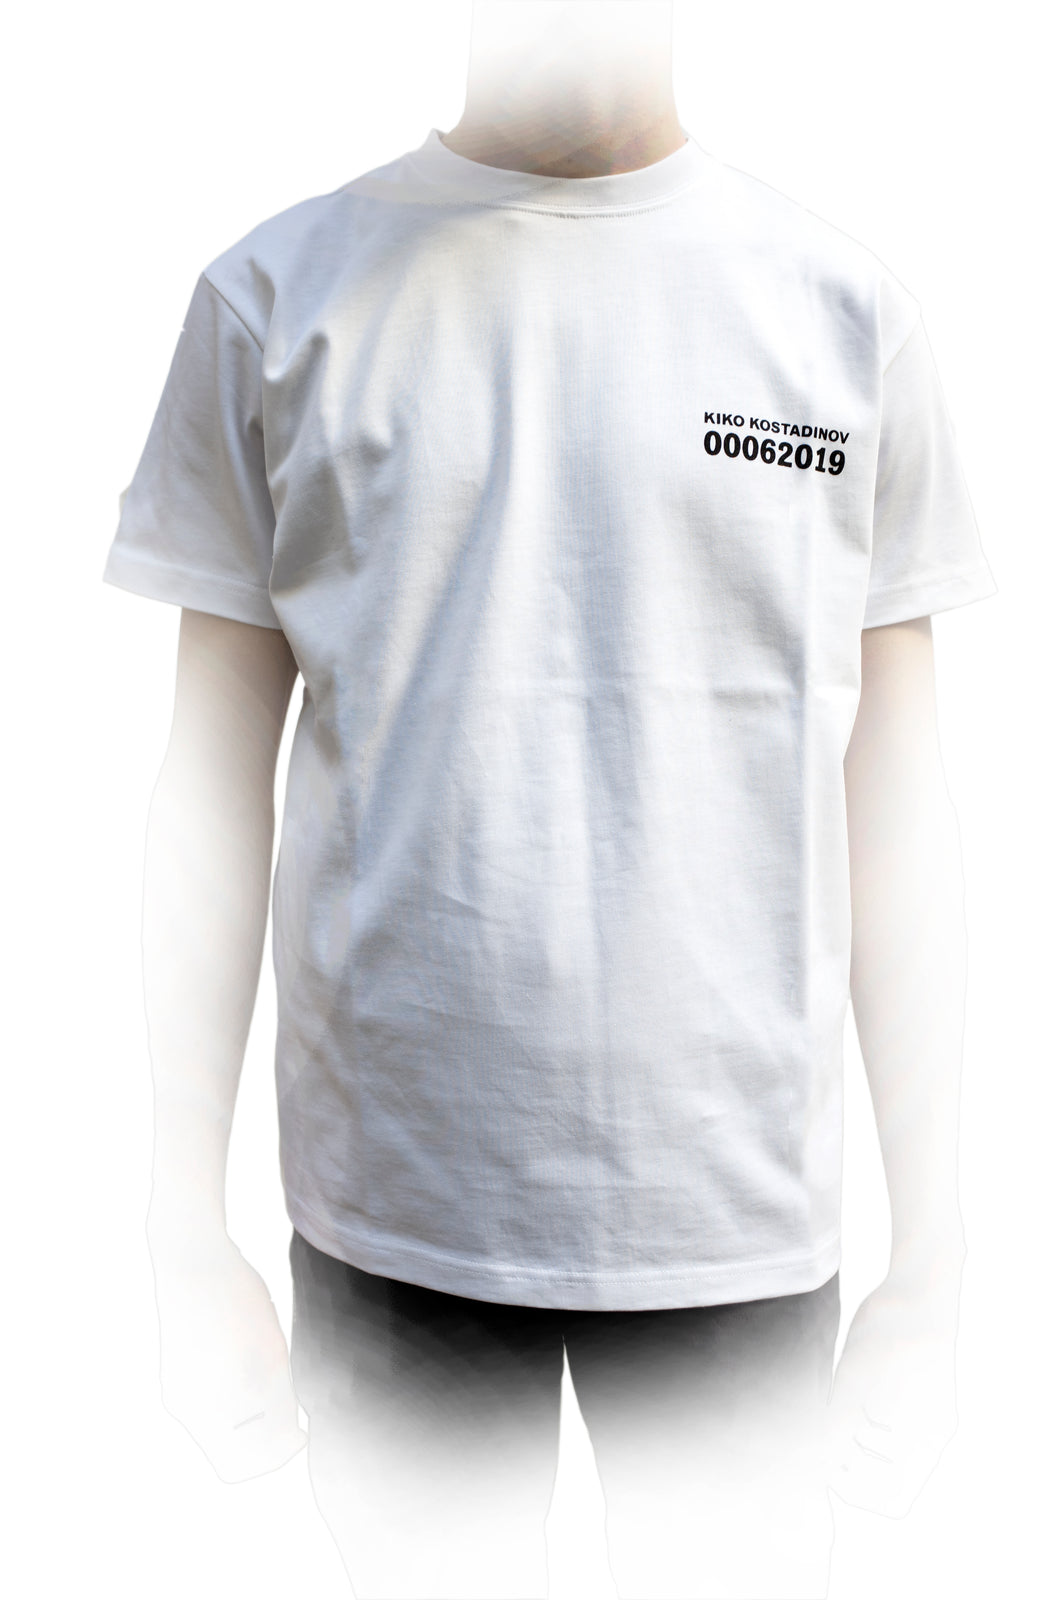 KIKO KOSTADINOV 00062019 GRAPHIC TEE WHITE